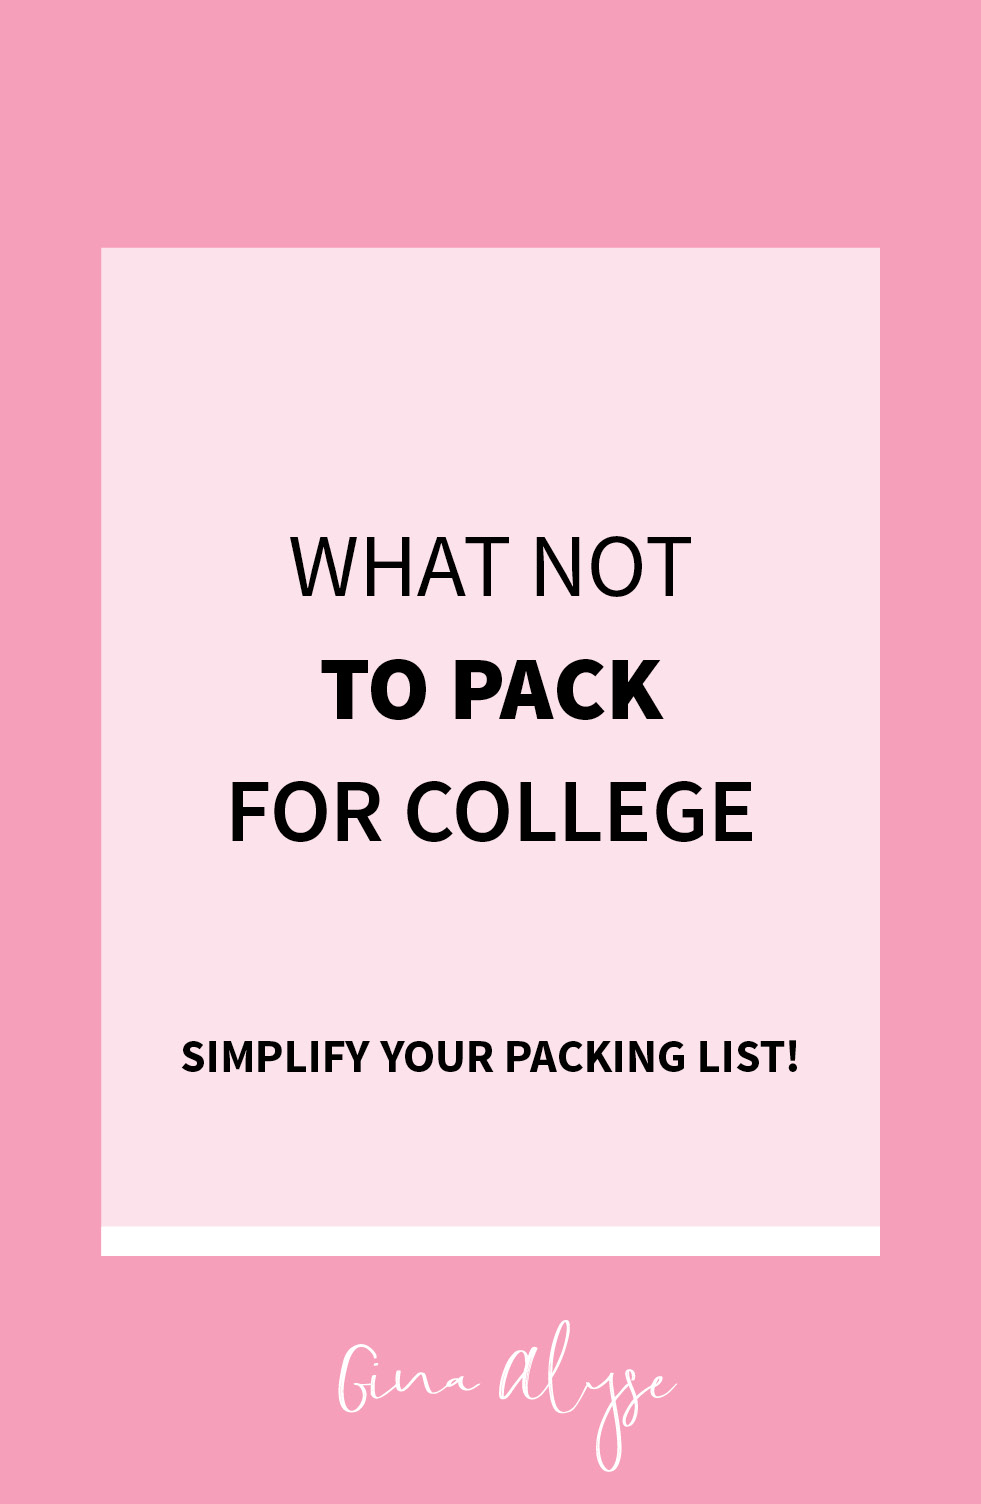 What NOT to Pack for College